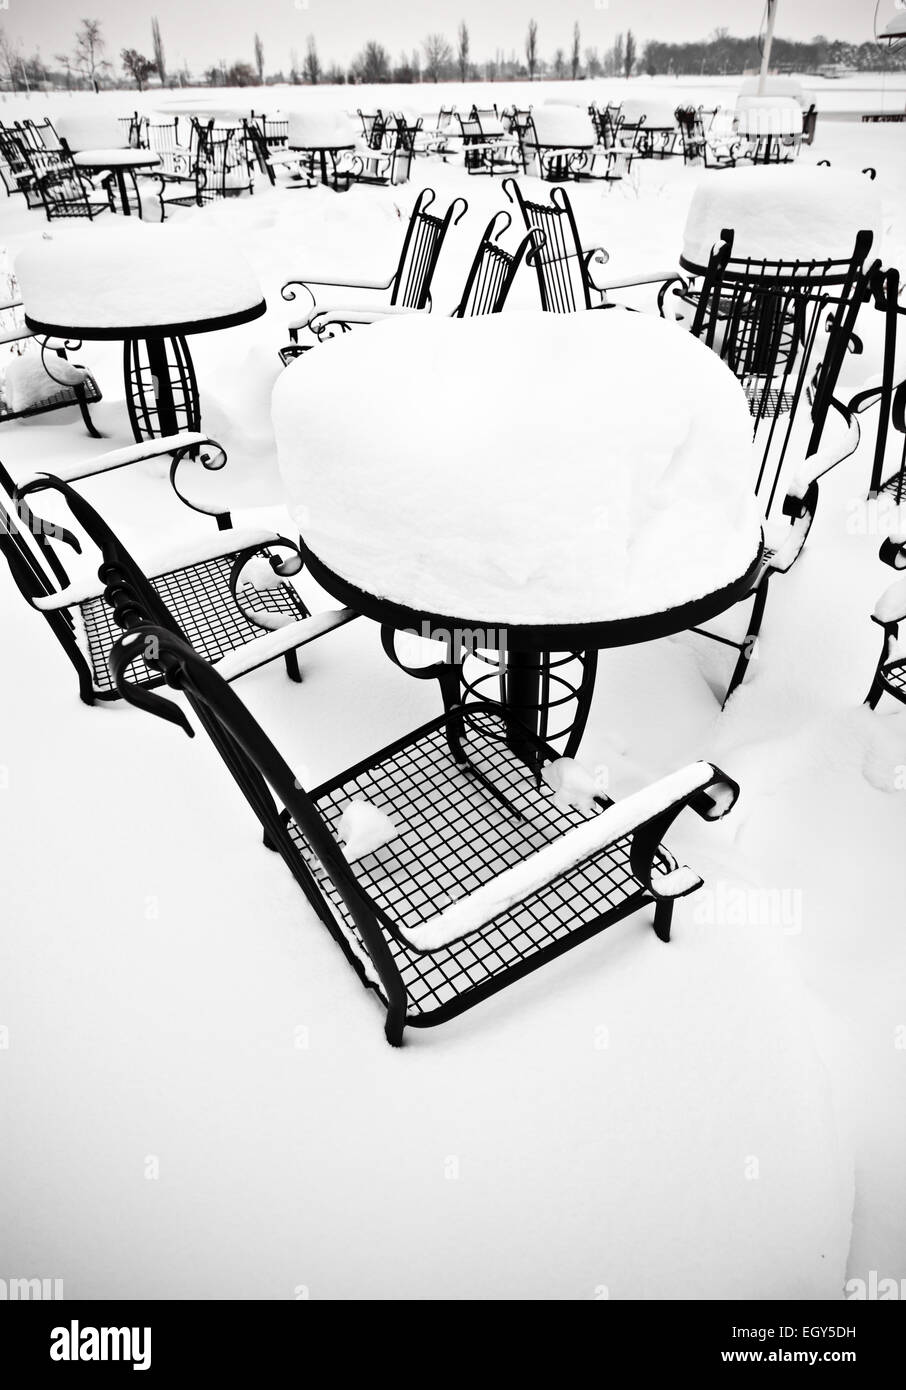 Chairs and table from a local coffee shop cowered with snow - Stock Image